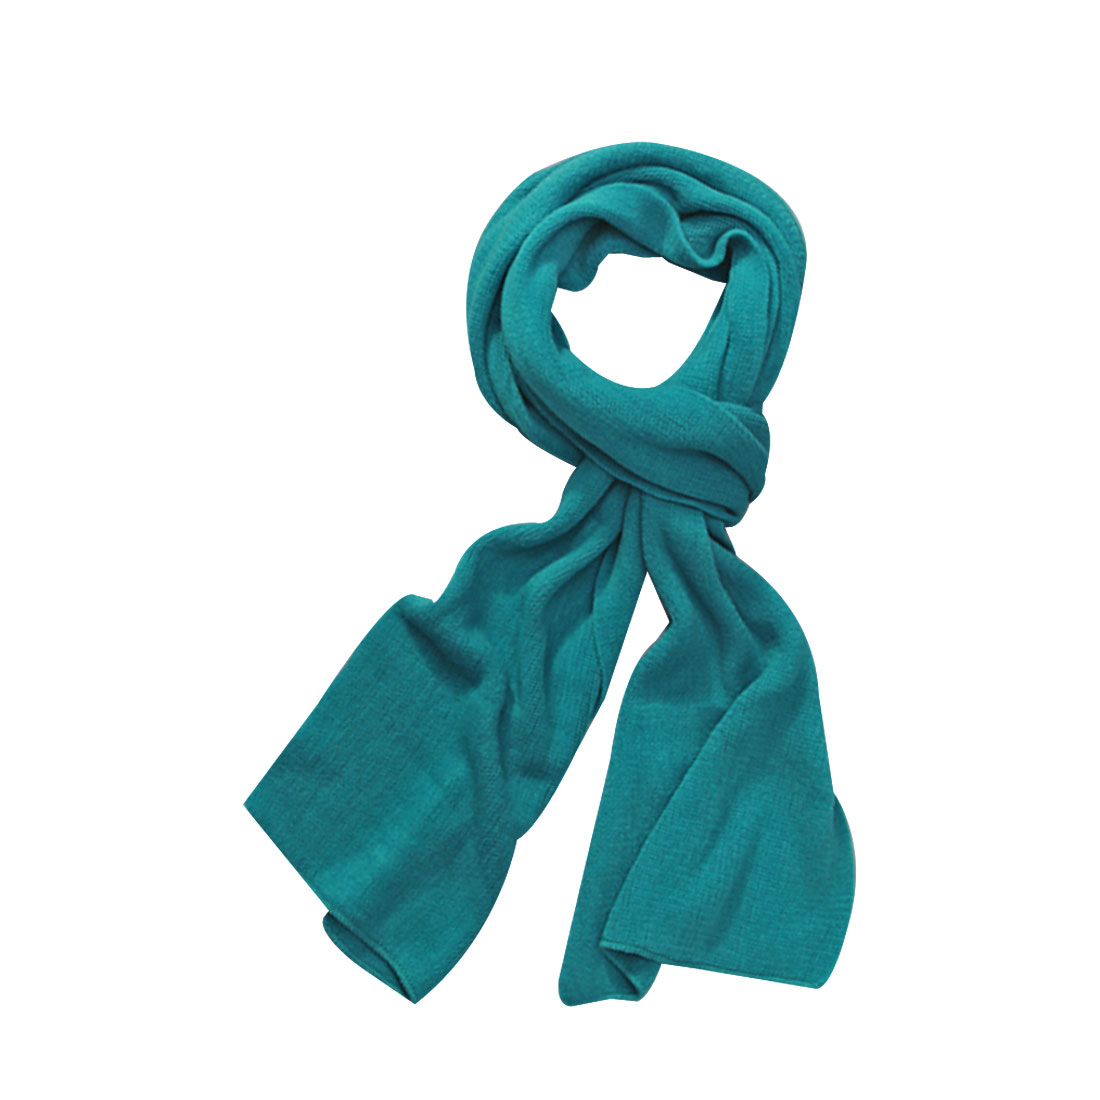 "Unisex Teal Color 11.8"" Width Simple Design Acrylic Winter Cool Scarves"